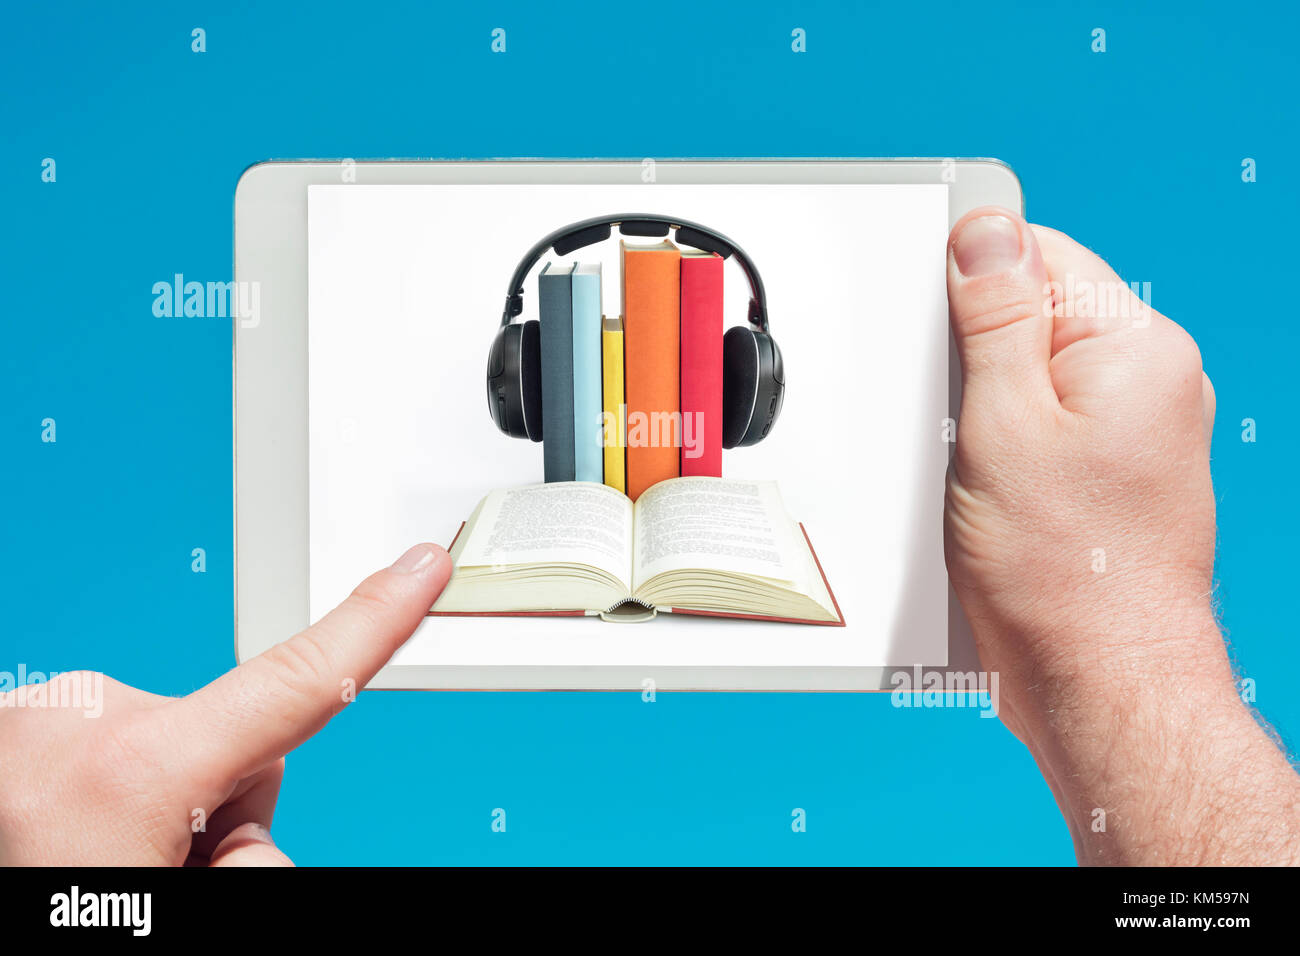 Man holding a tablet device showing audiobooks concept and touching the screen with a finger with blue sky in background. - Stock Image